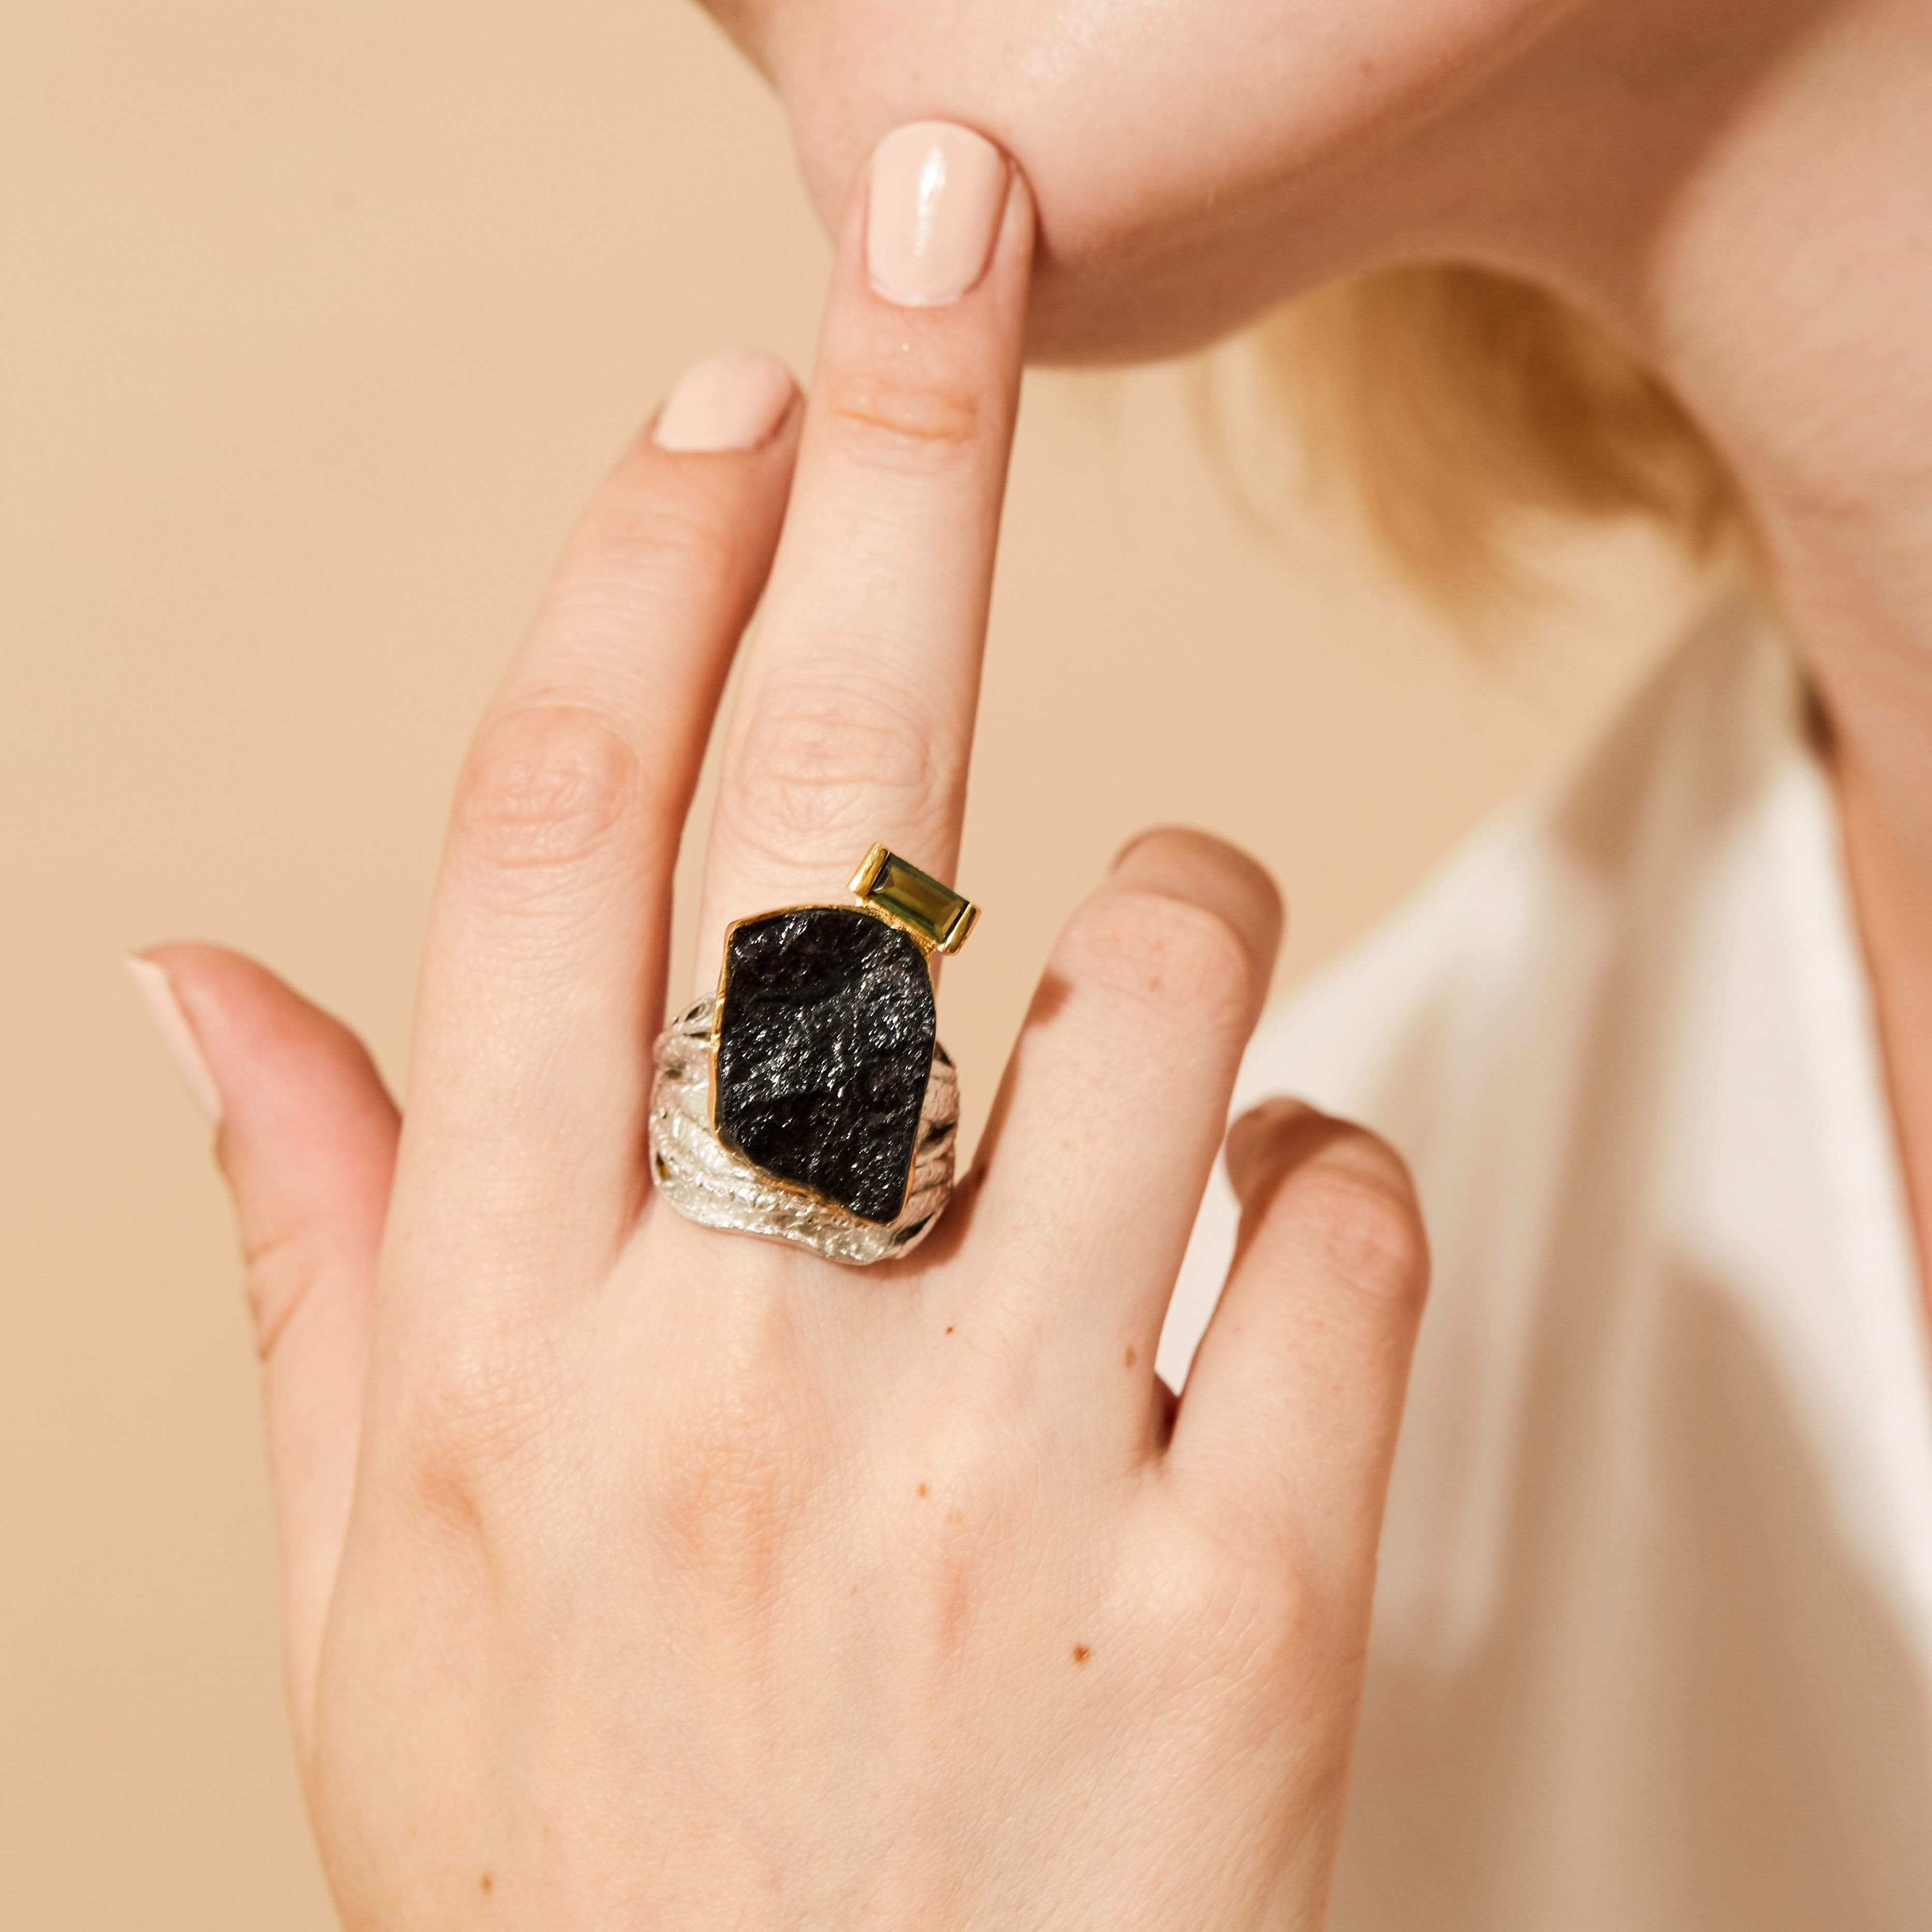 Melyn Ring, Exclusive, Gold, Rhodium, silver, spo-disabled, StoneColor:Green, Style:Fantasy, Tourmaline, Type:LargeSoloStone Ring